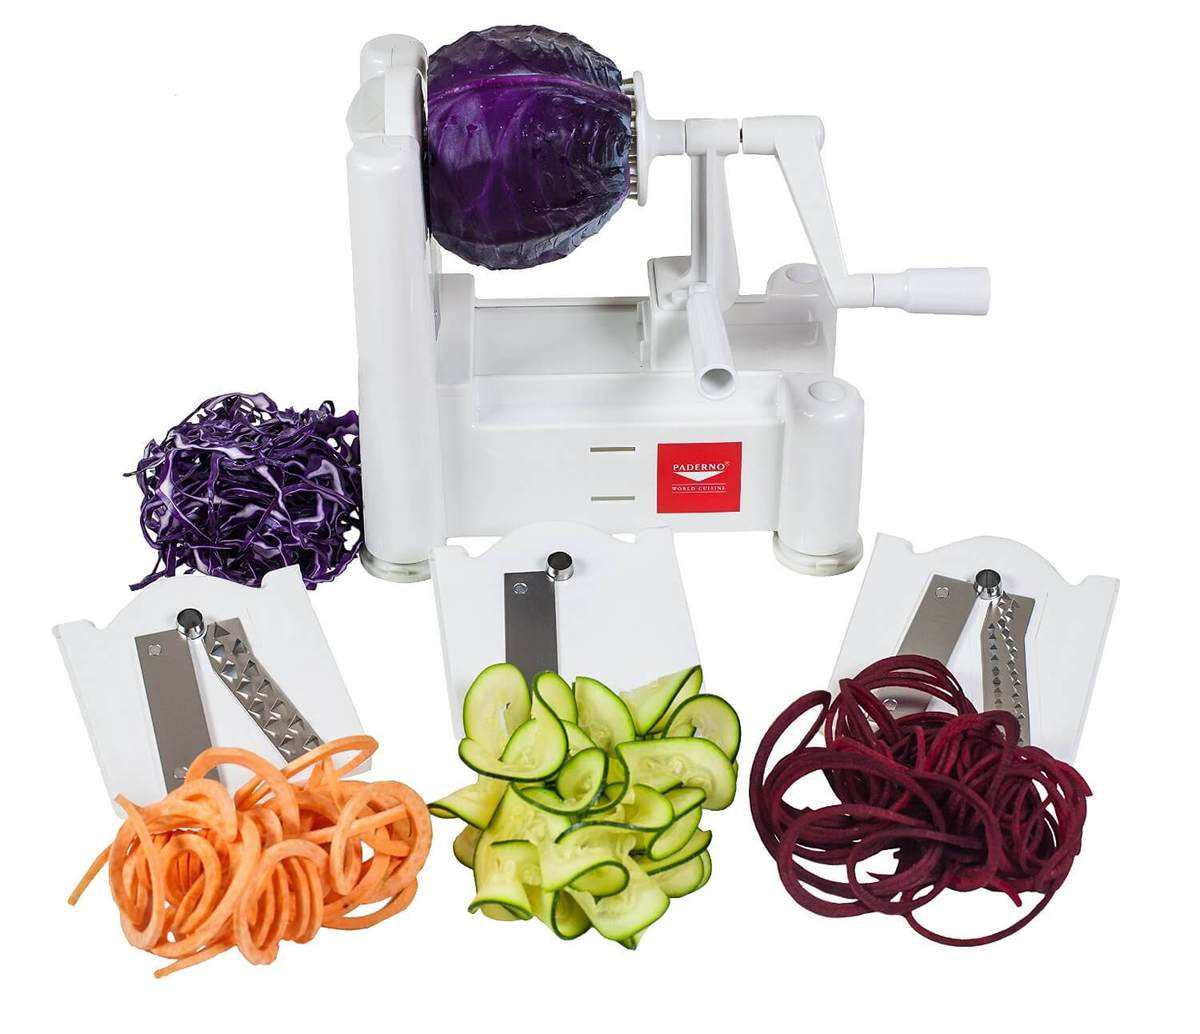 Paderno Spiral Slicer - Make Low Carb Noodles in a Cinch | Peace Love and Low Carb